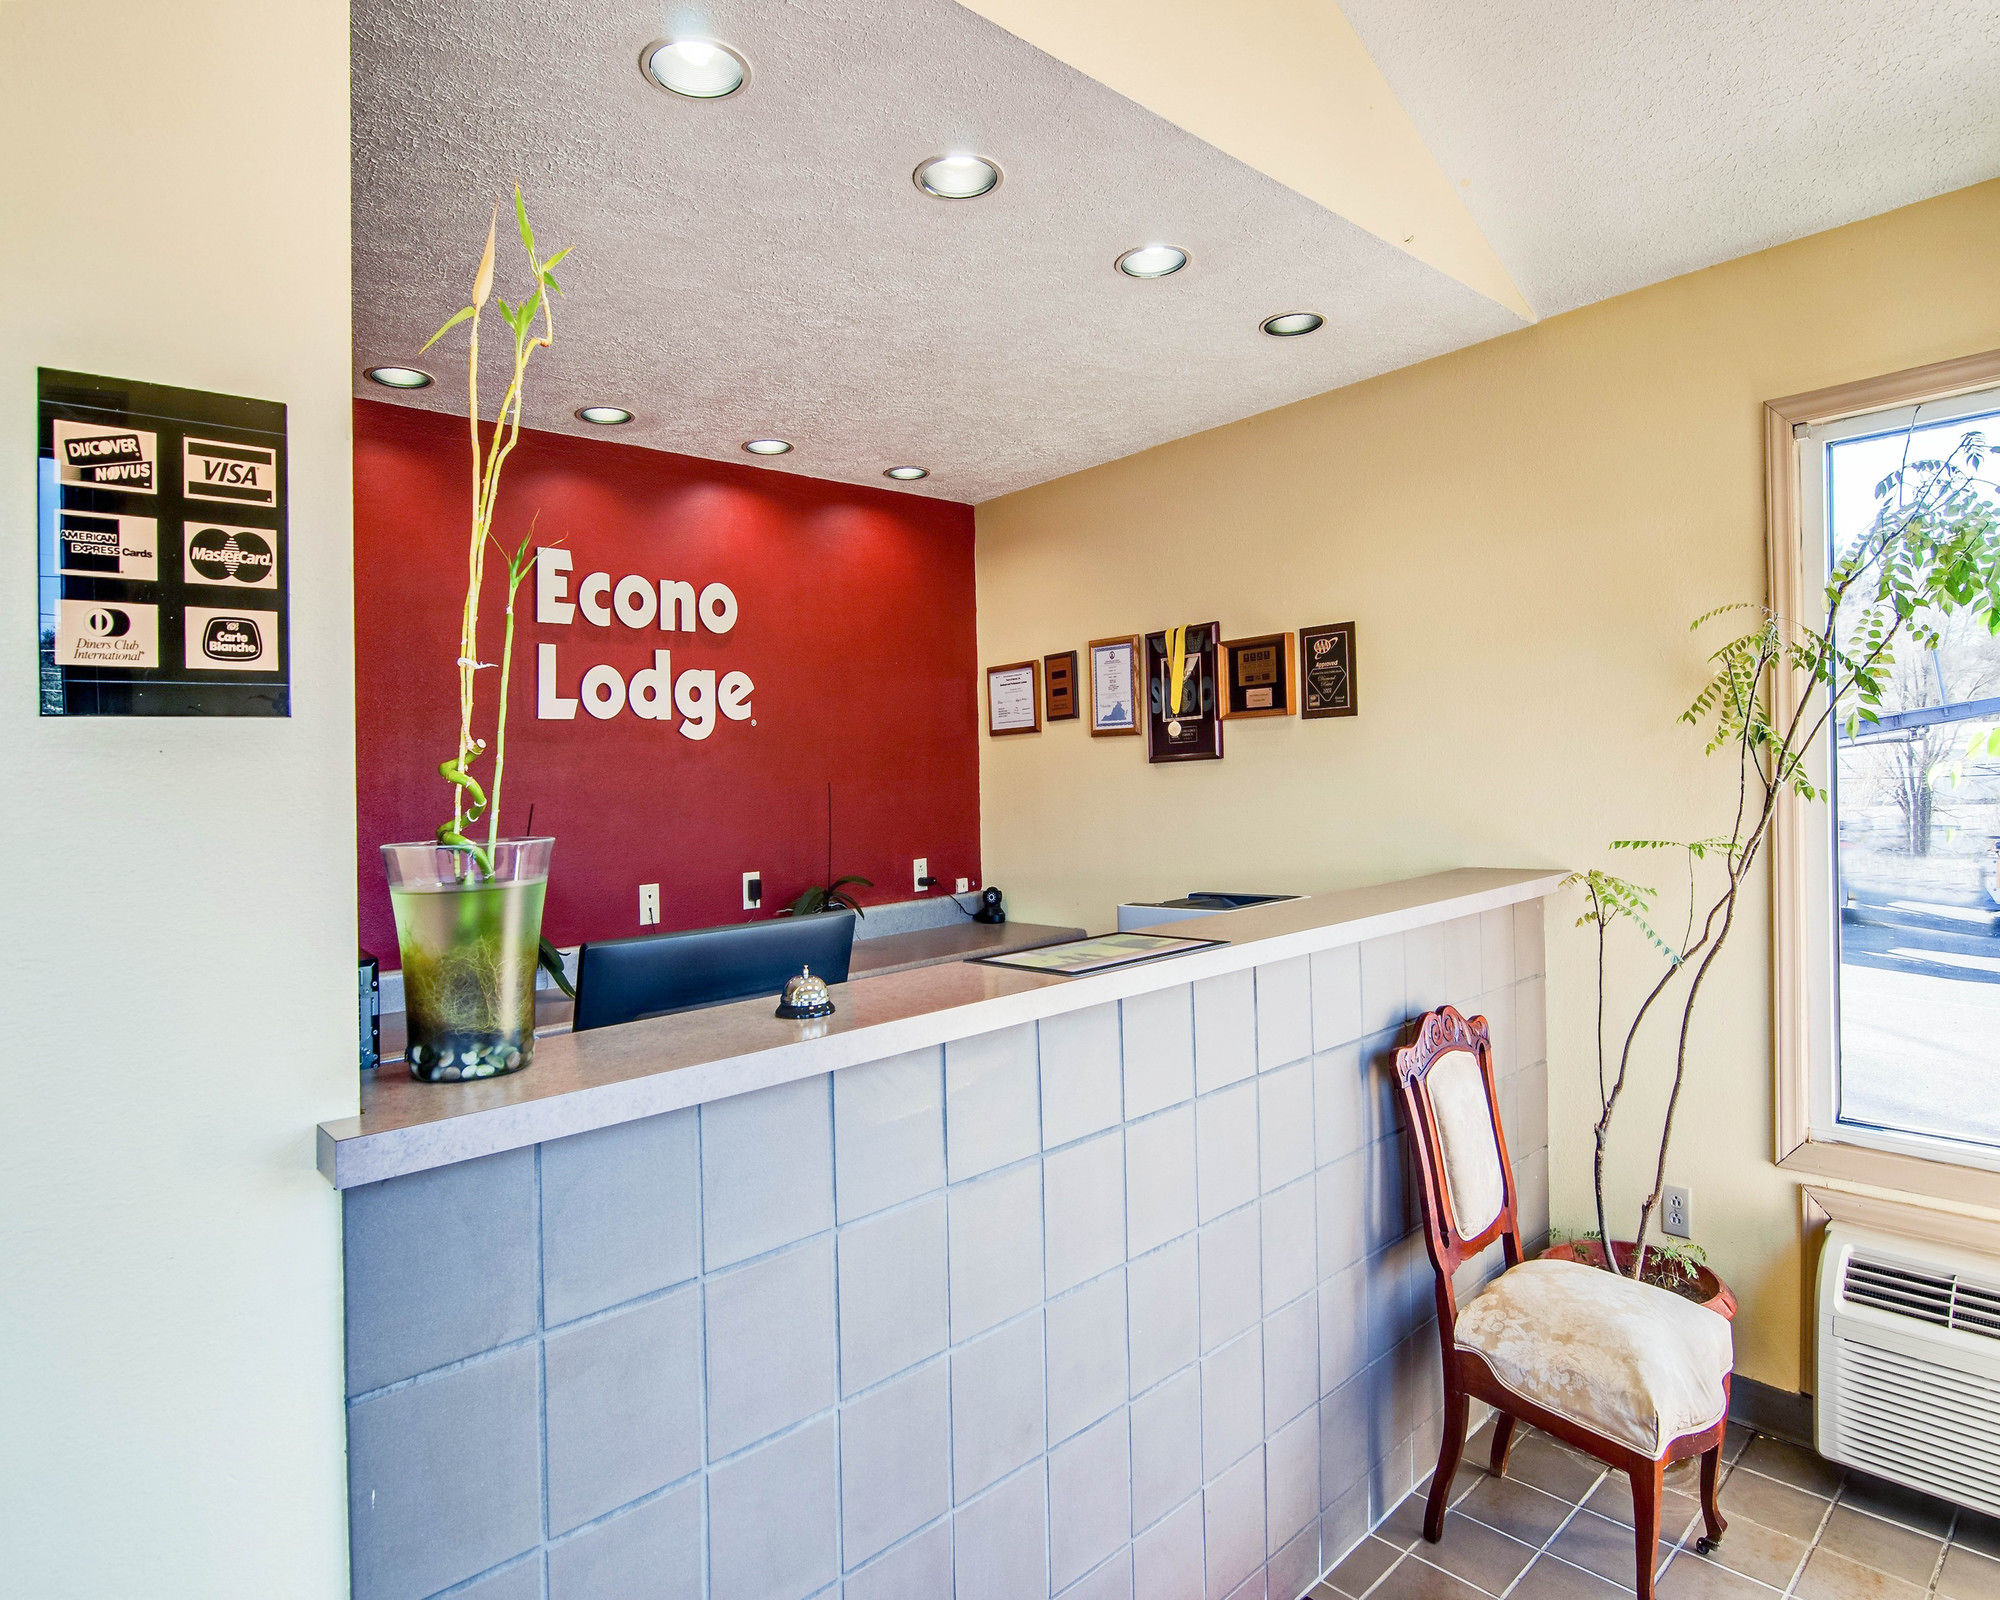 Econo Lodge Marion in Marion, VA